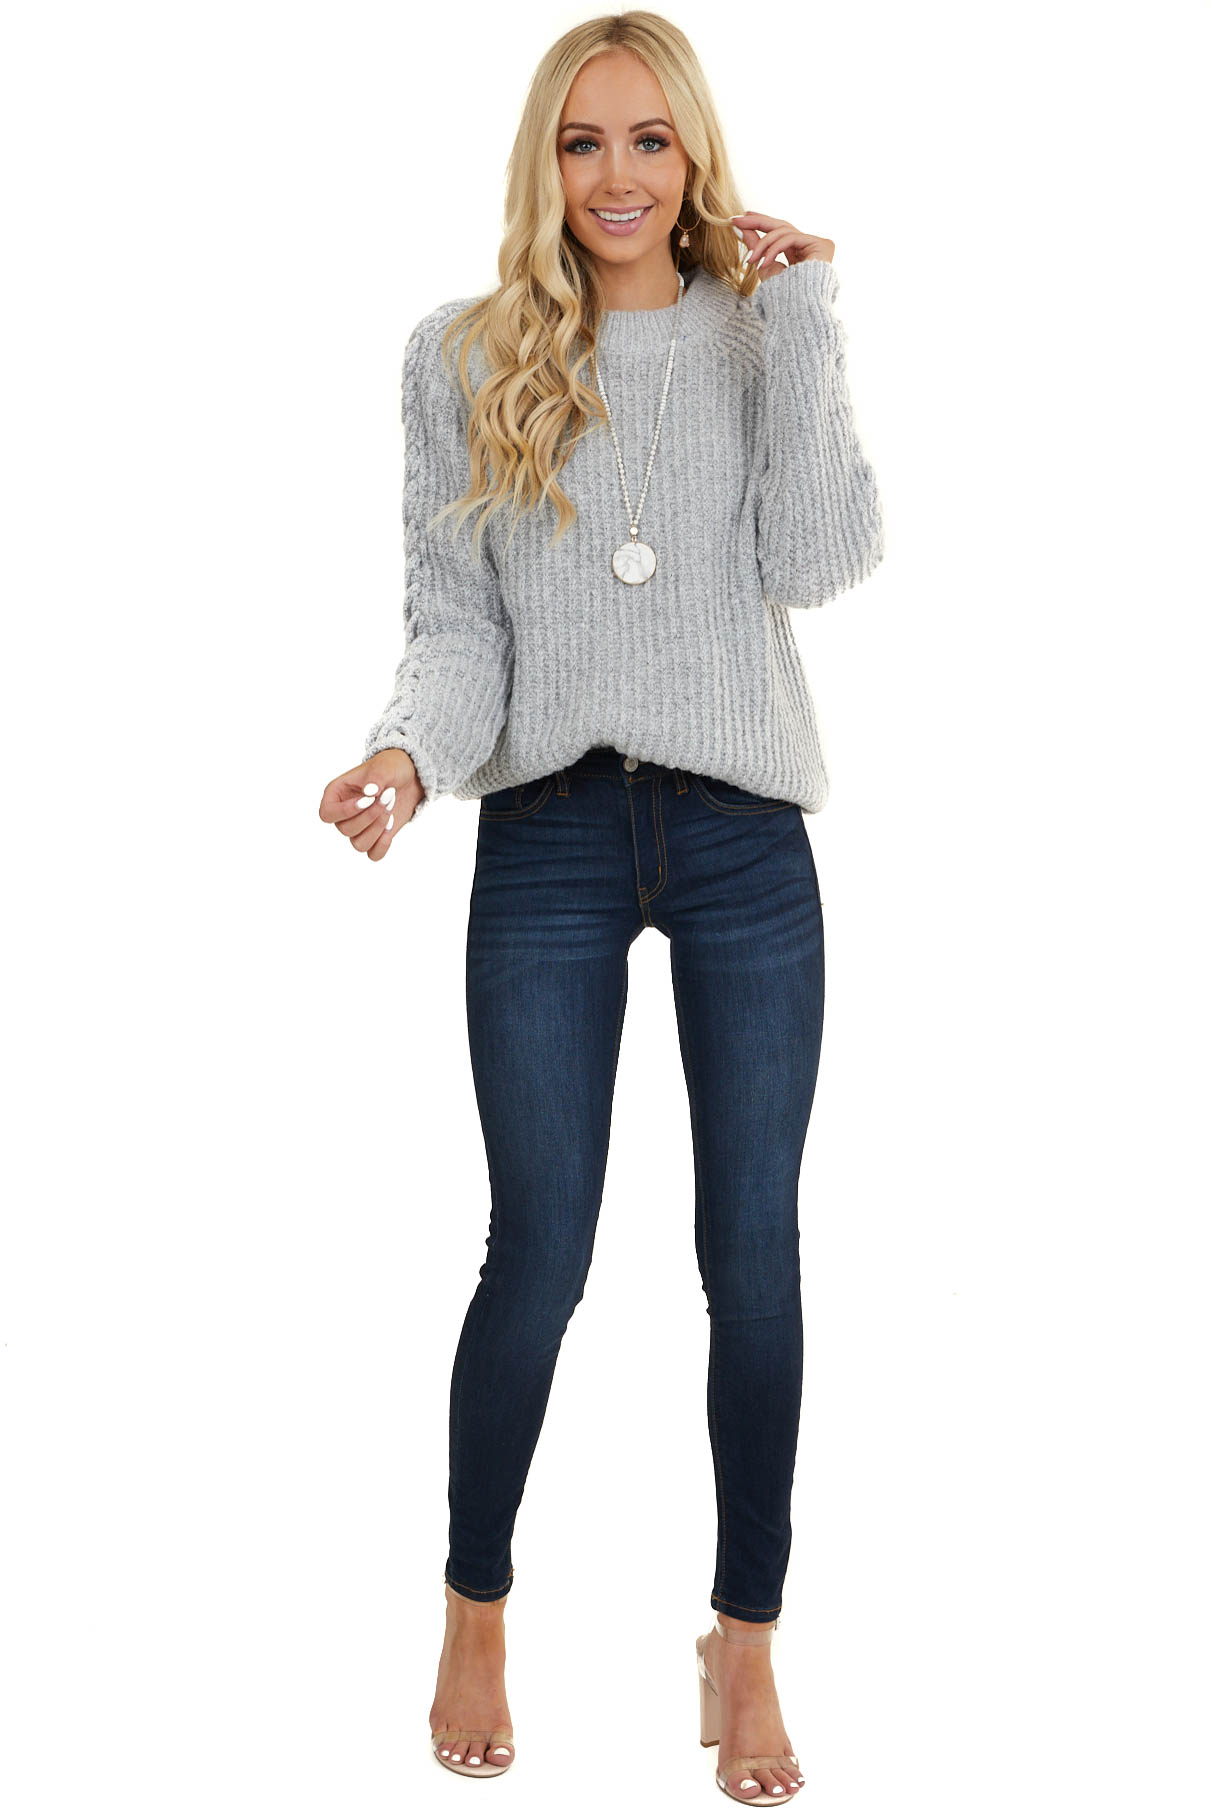 Heather Grey Chunky Knit Sweater with Criss Cross Sleeves